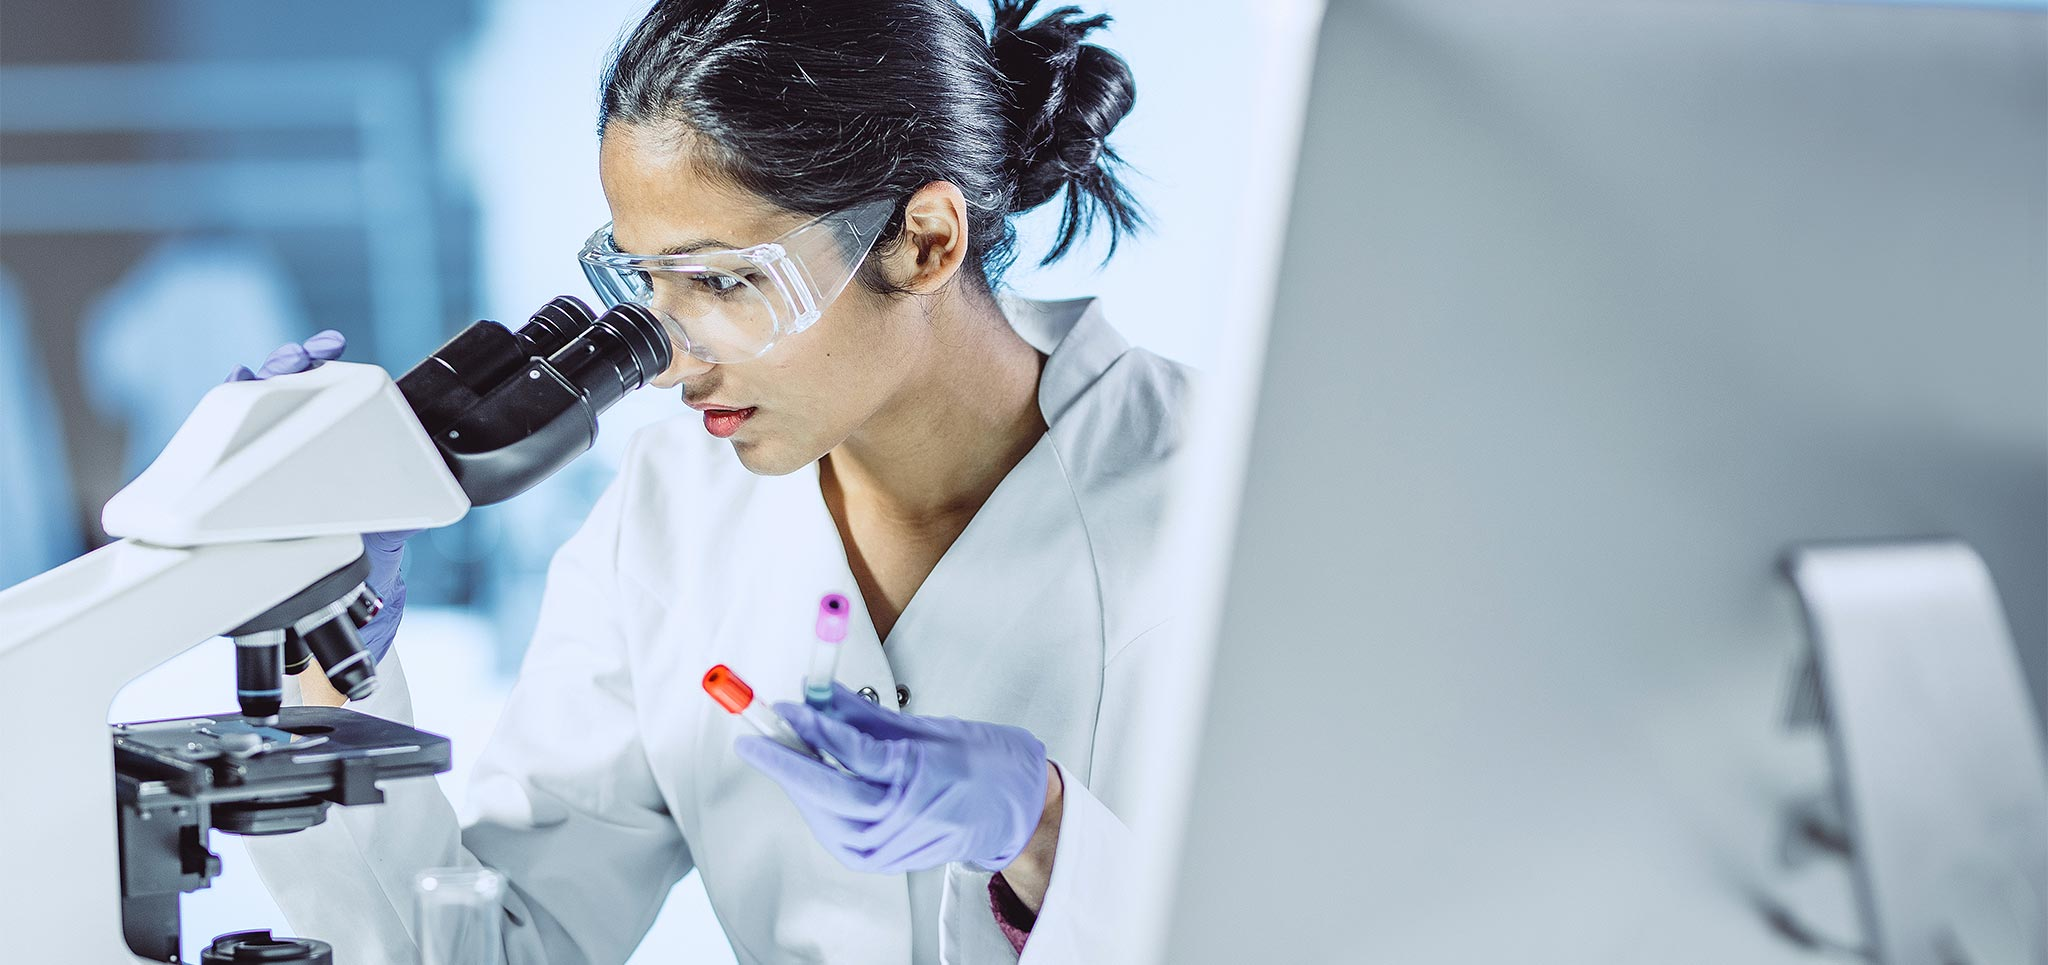 Female scientist operating a microscope